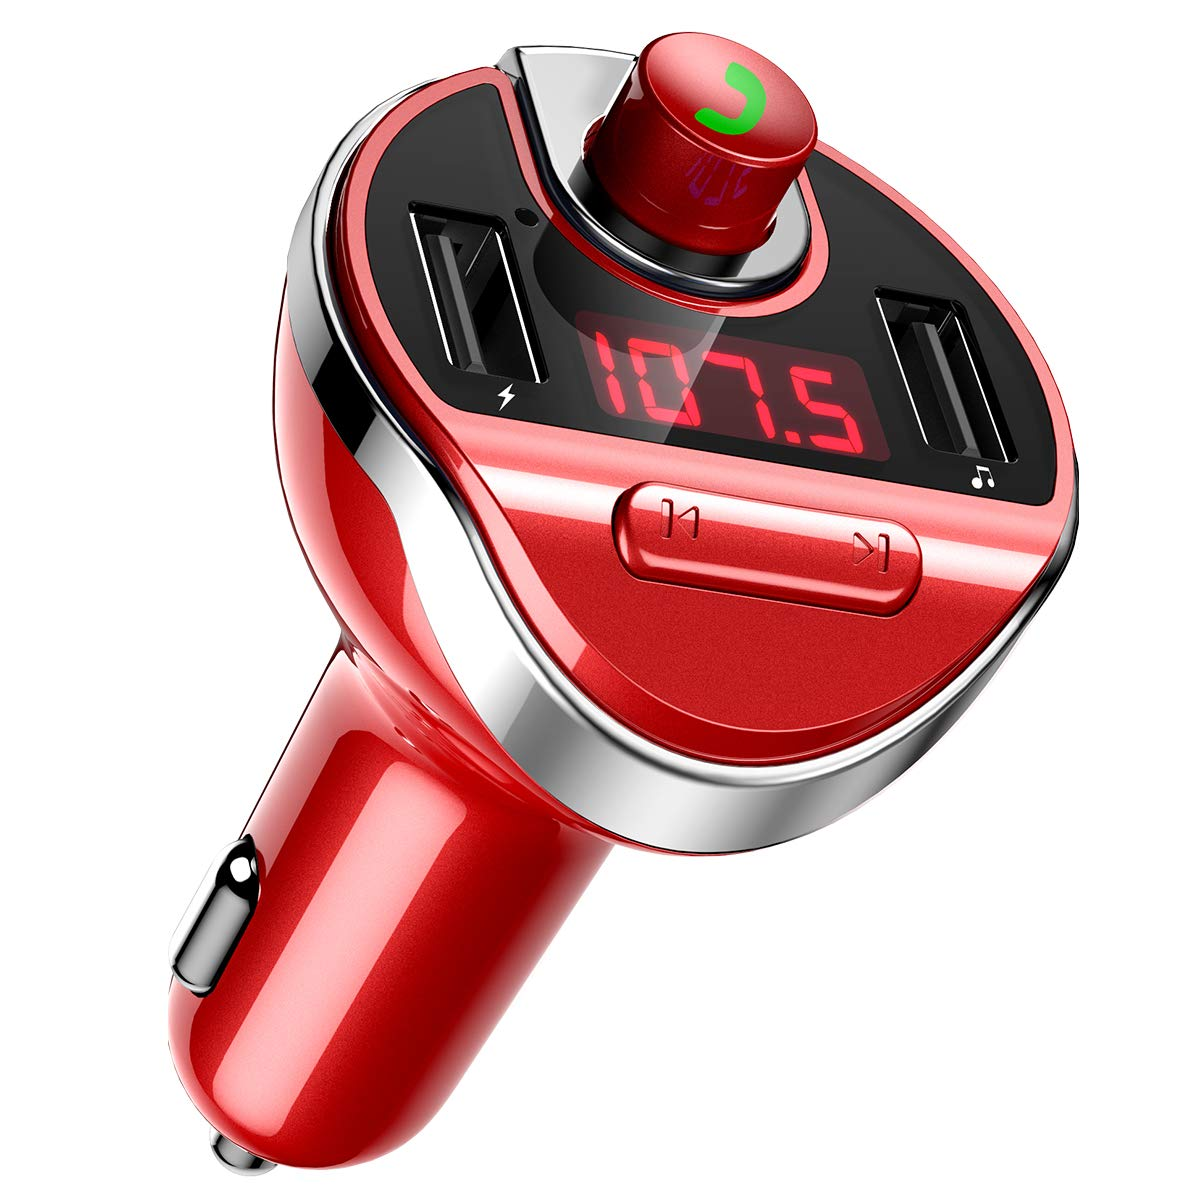 Criacr [Upgraded Version] Bluetooth FM Transmitter for Car, Wireless FM Radio Transmitter Adapter Car Kit, Dual USB Charging Ports, Hands Free Calling, U Disk, TF Card MP3 Music Player(Red)